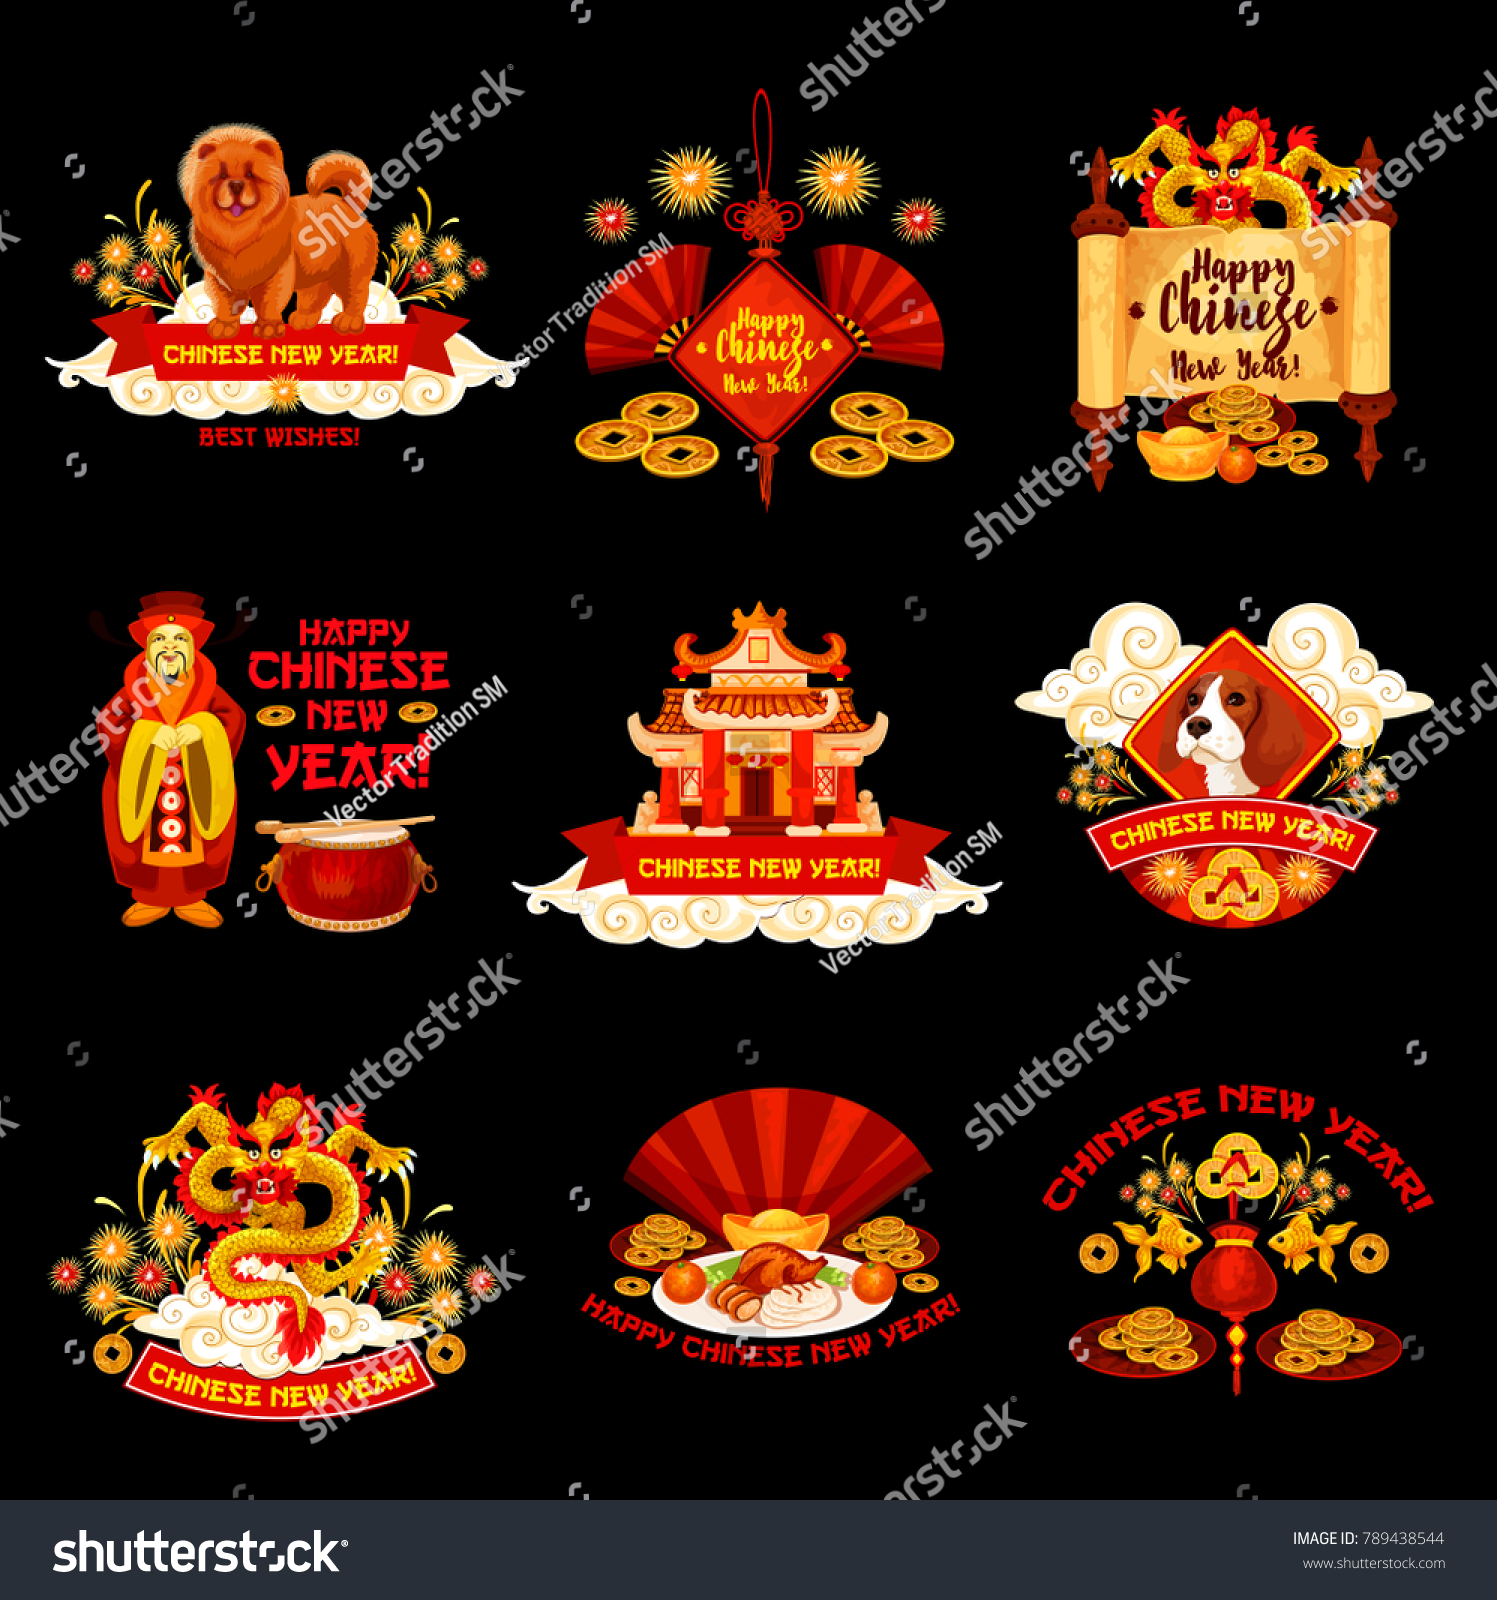 Happy Chinese New Year Wishes On Stock Vector Royalty Free